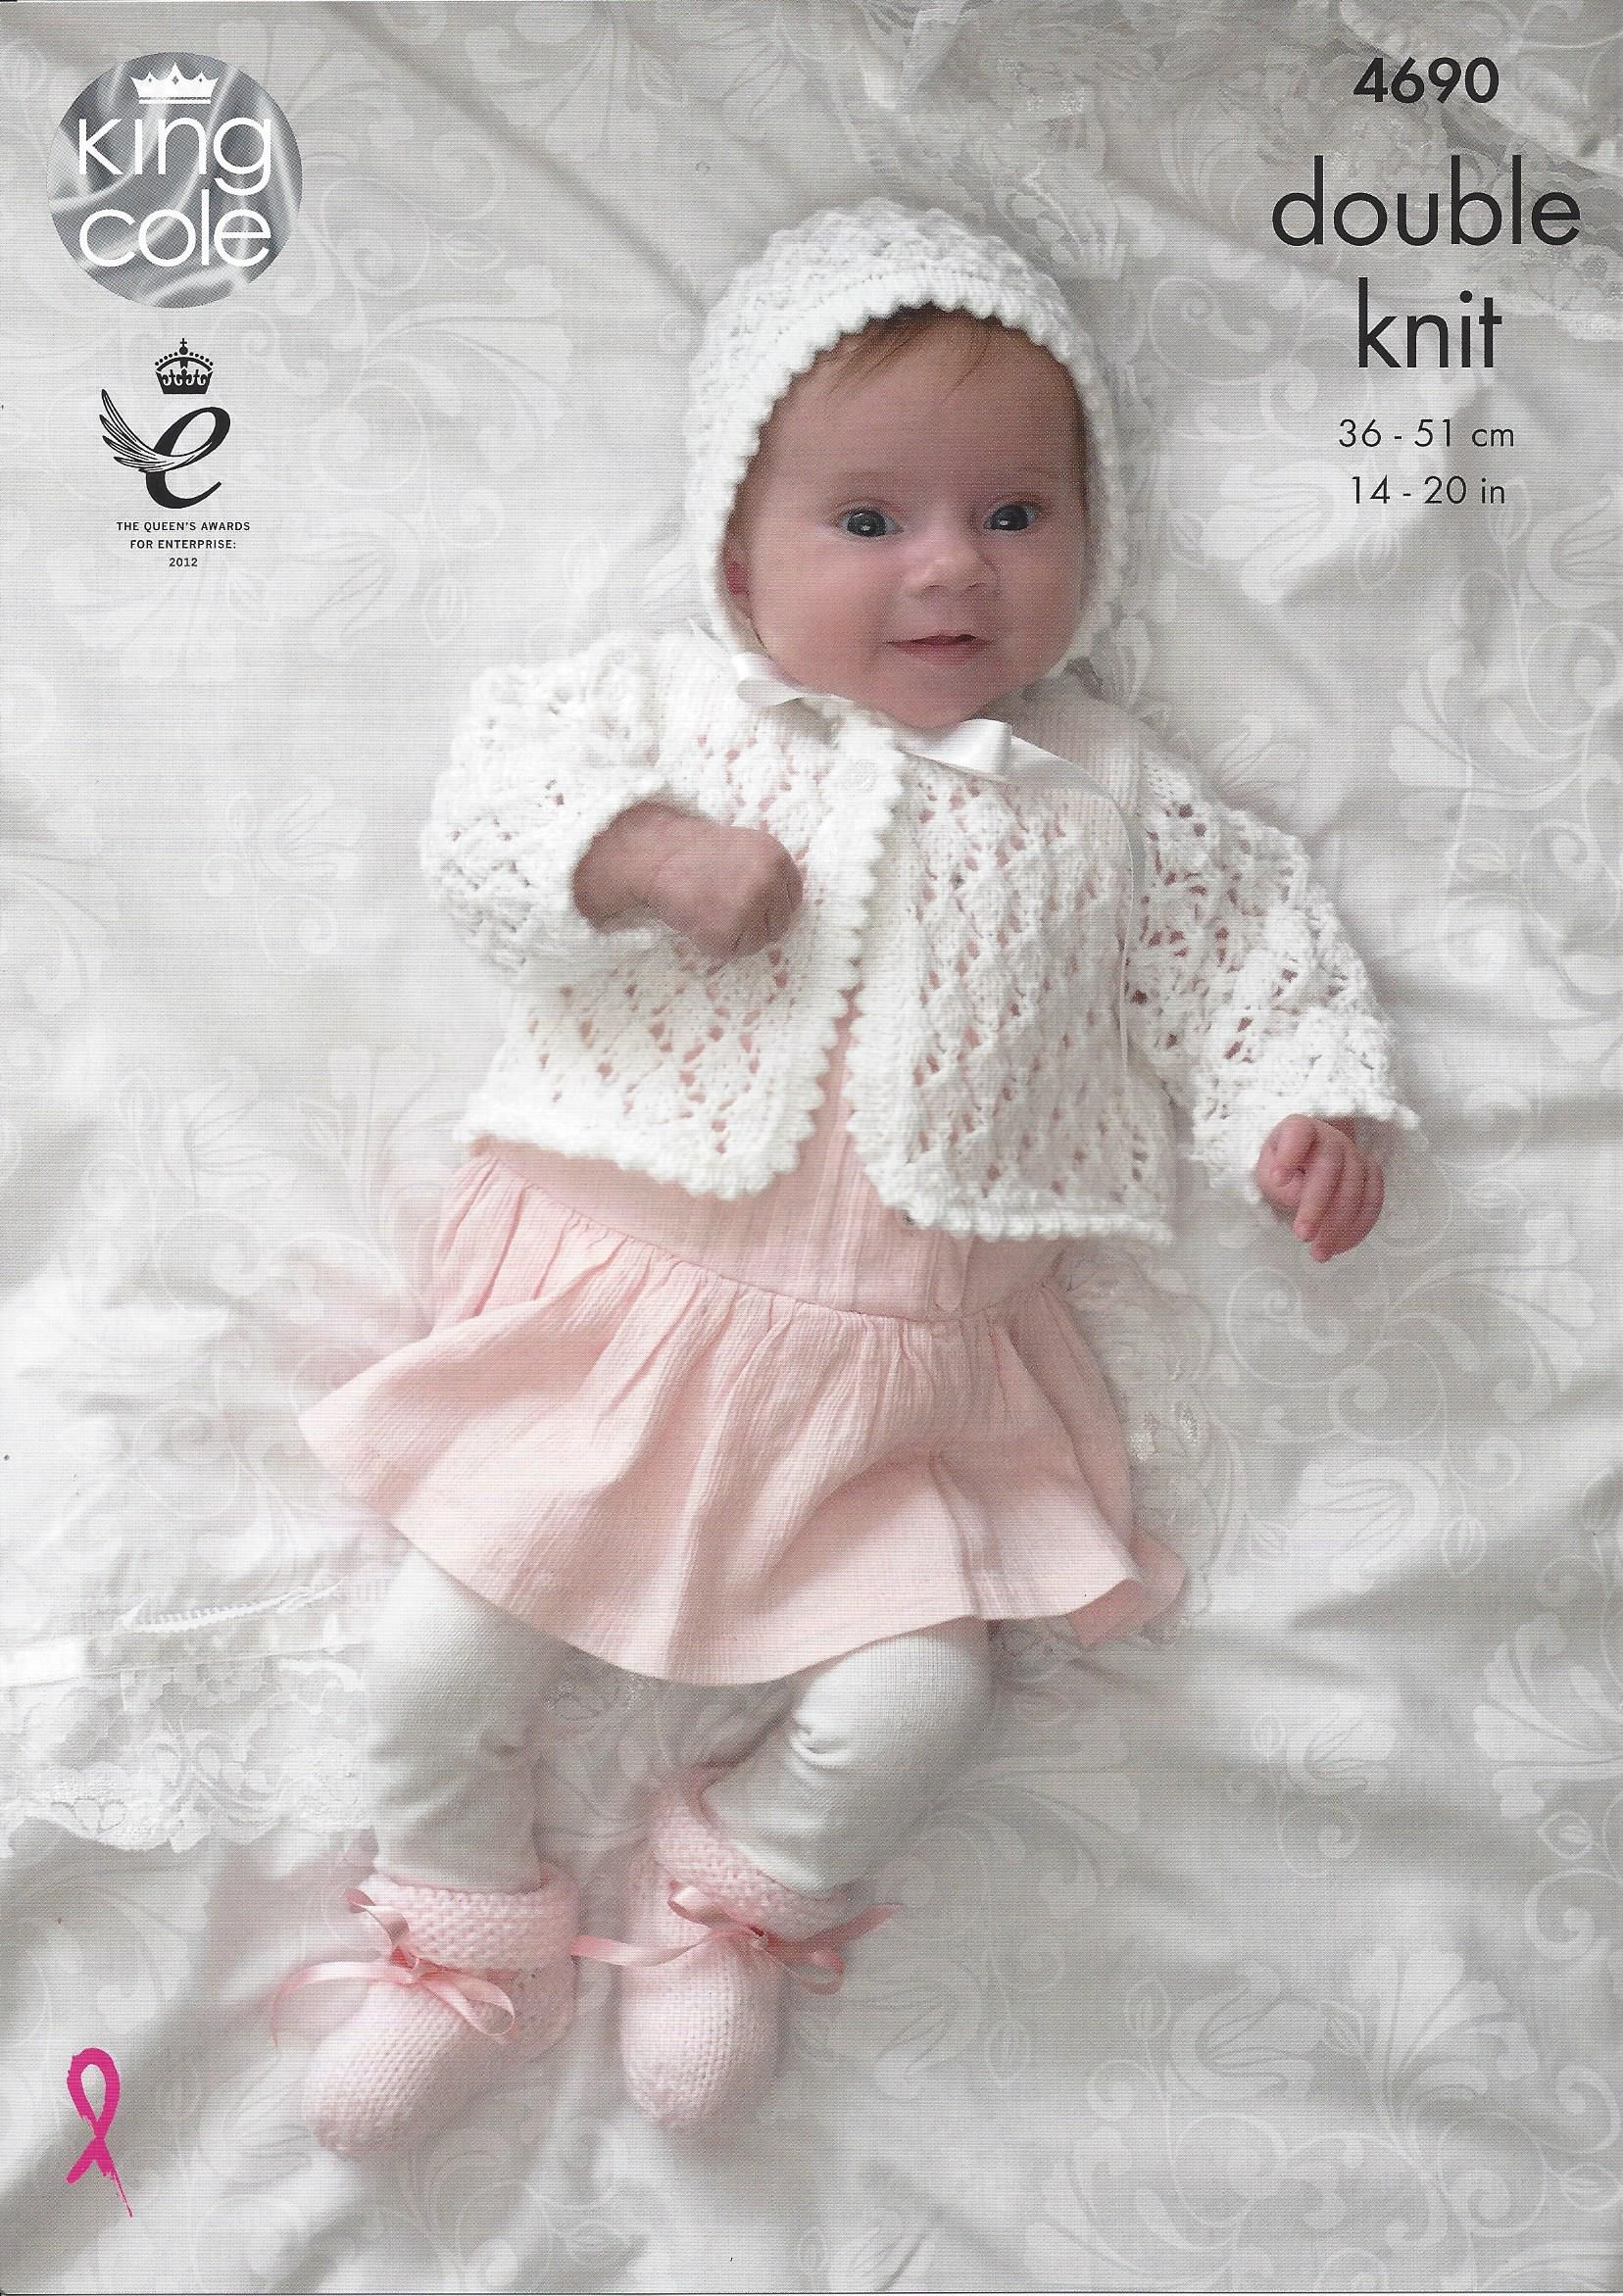 C king cole baby double knit patterns baby knitting books king cole knitting pattern and books include both the more traditional layette items such as very pretty matinee jackets and bonnets to more on trend bankloansurffo Image collections